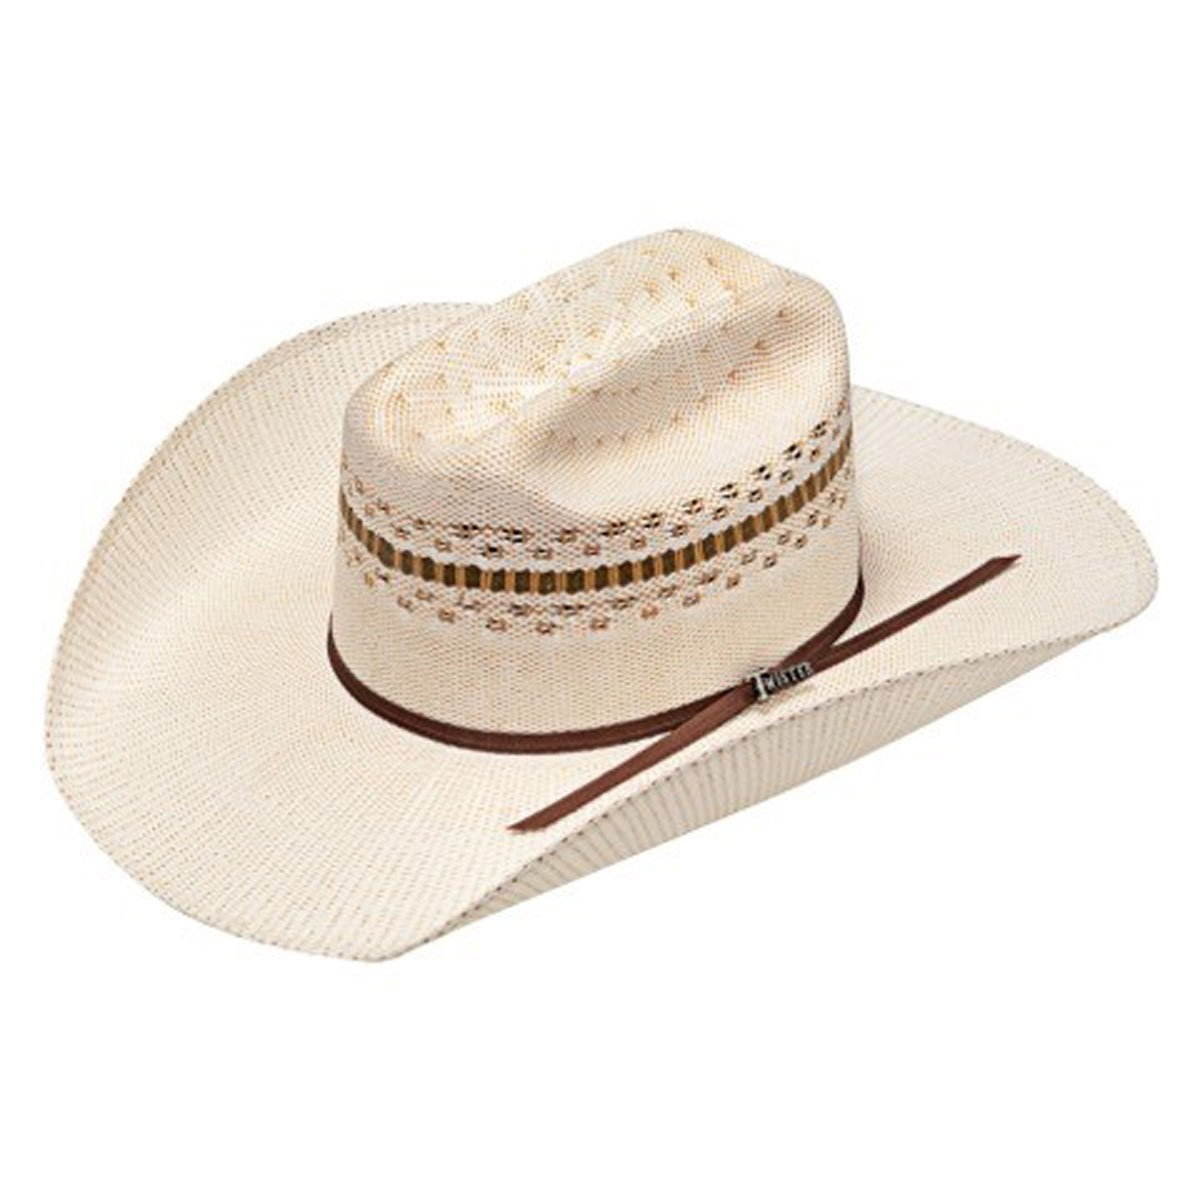 TOBACCO VENTED TWISTER STRAW HAT